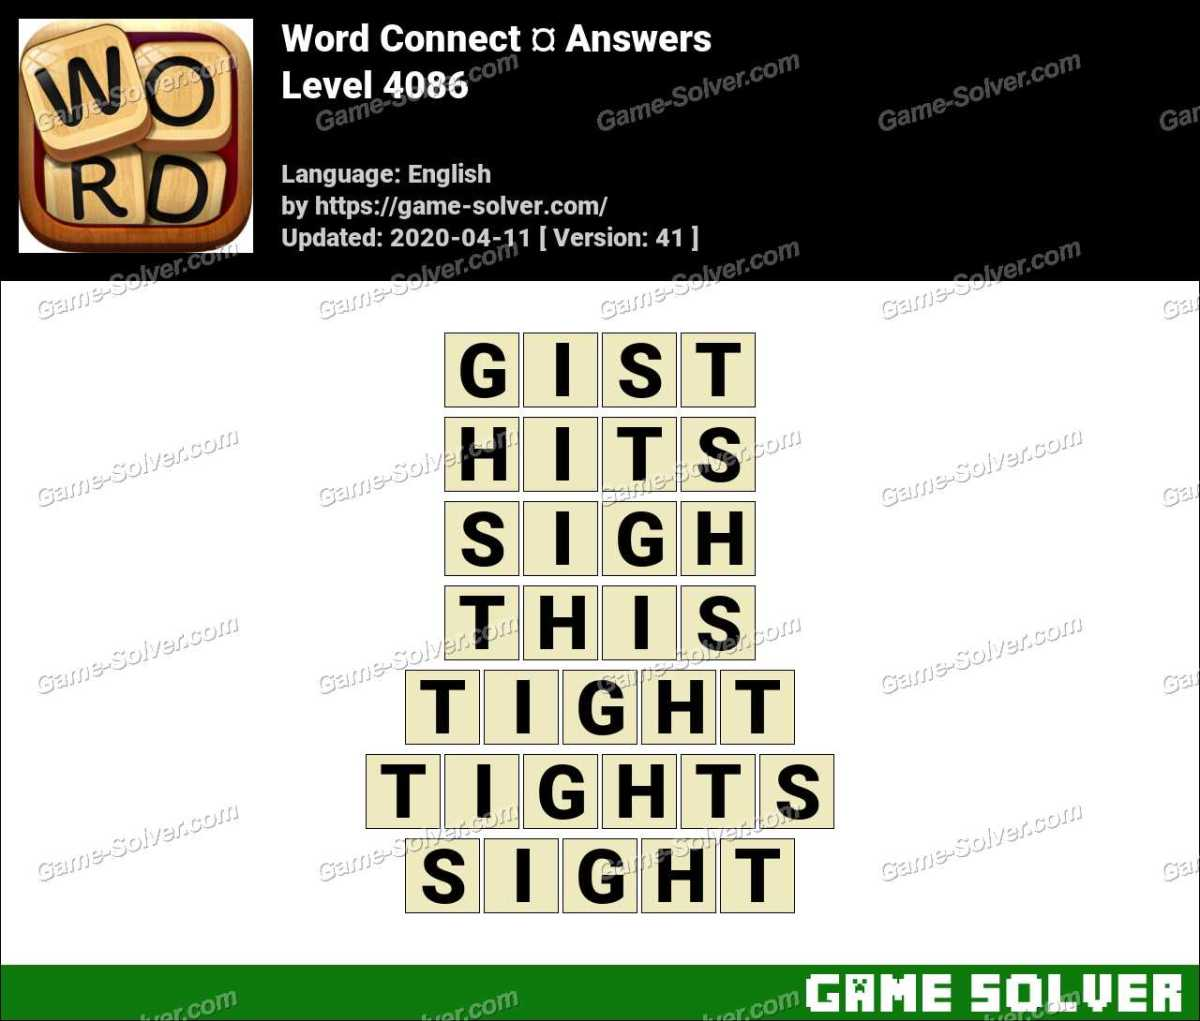 Word Connect Level 4086 Answers